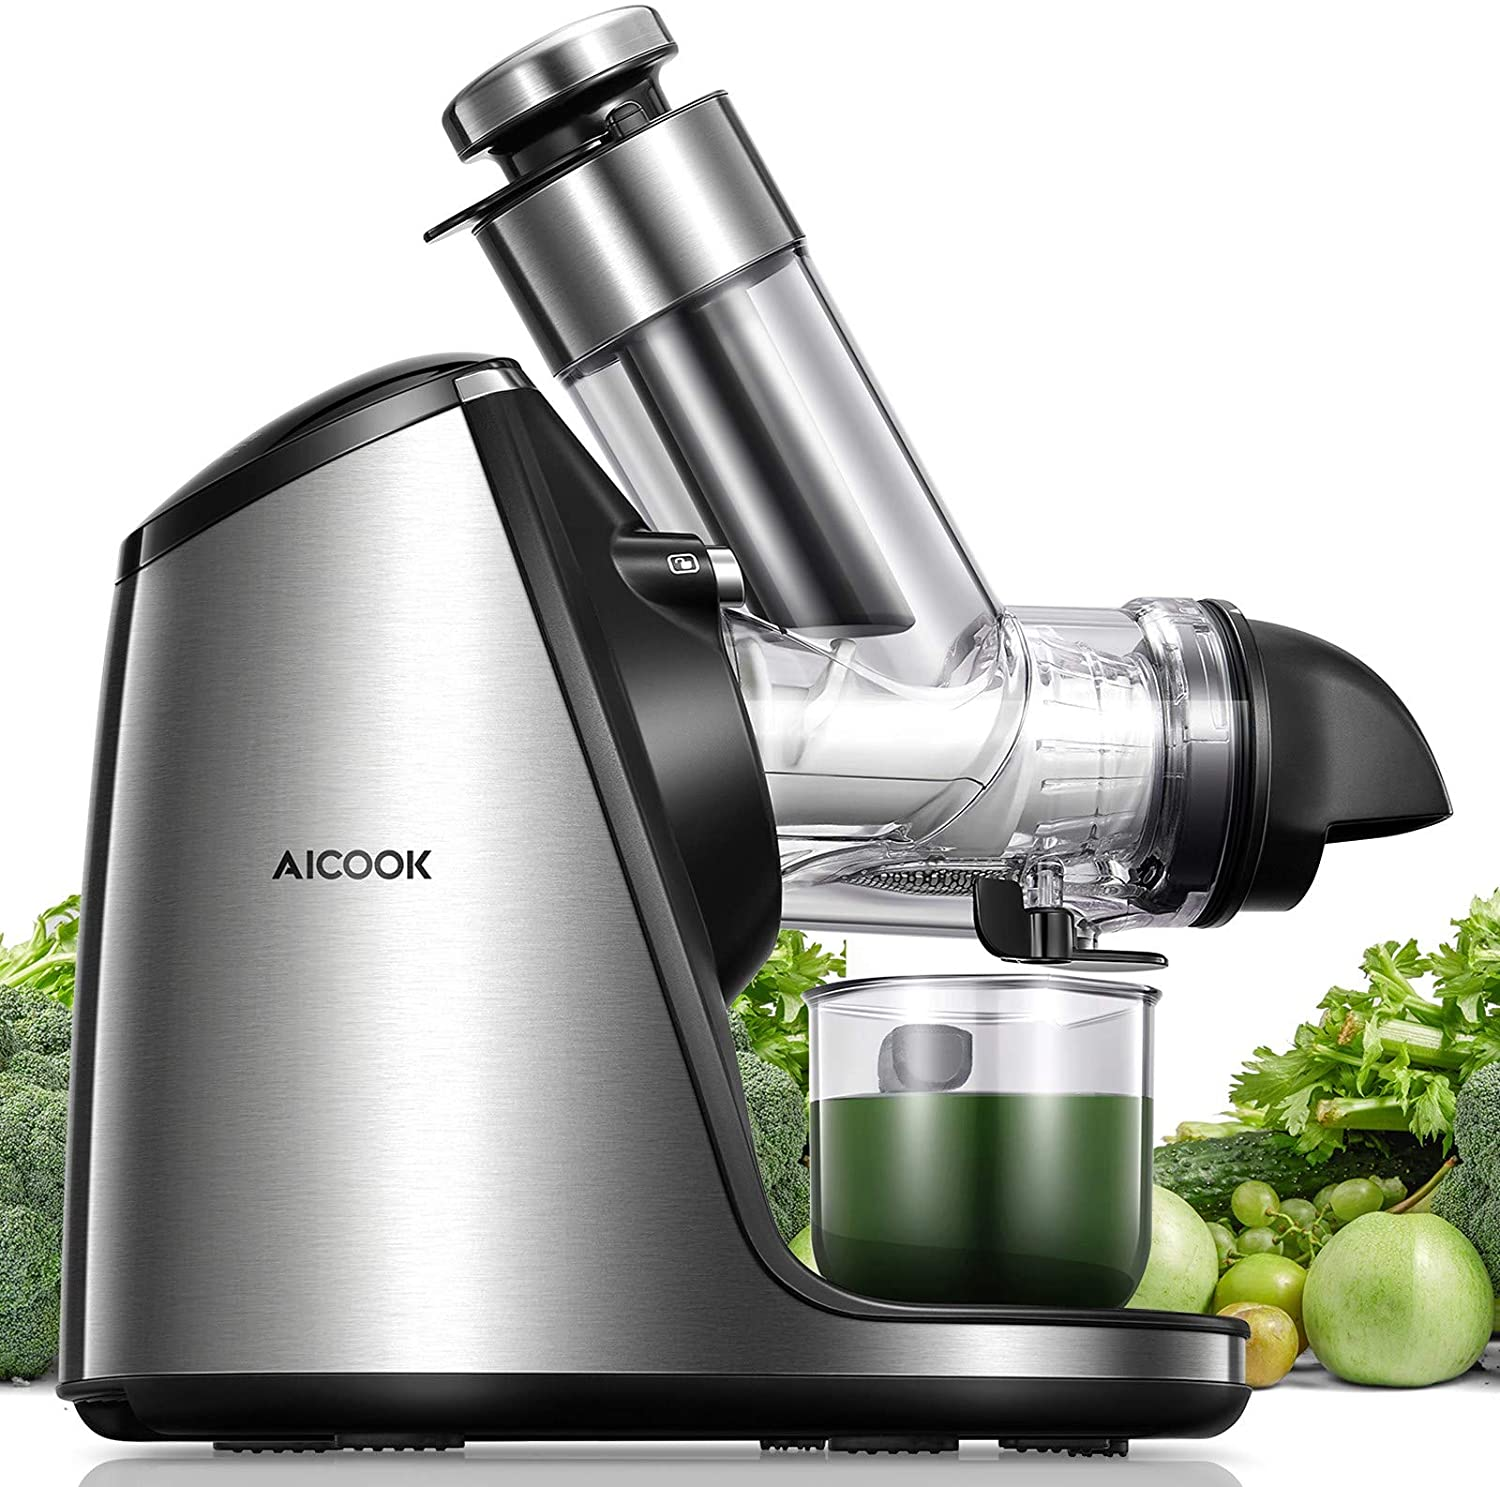 A silver slow juicer surrounded by green fruits depositing green juice into a clear glass cup